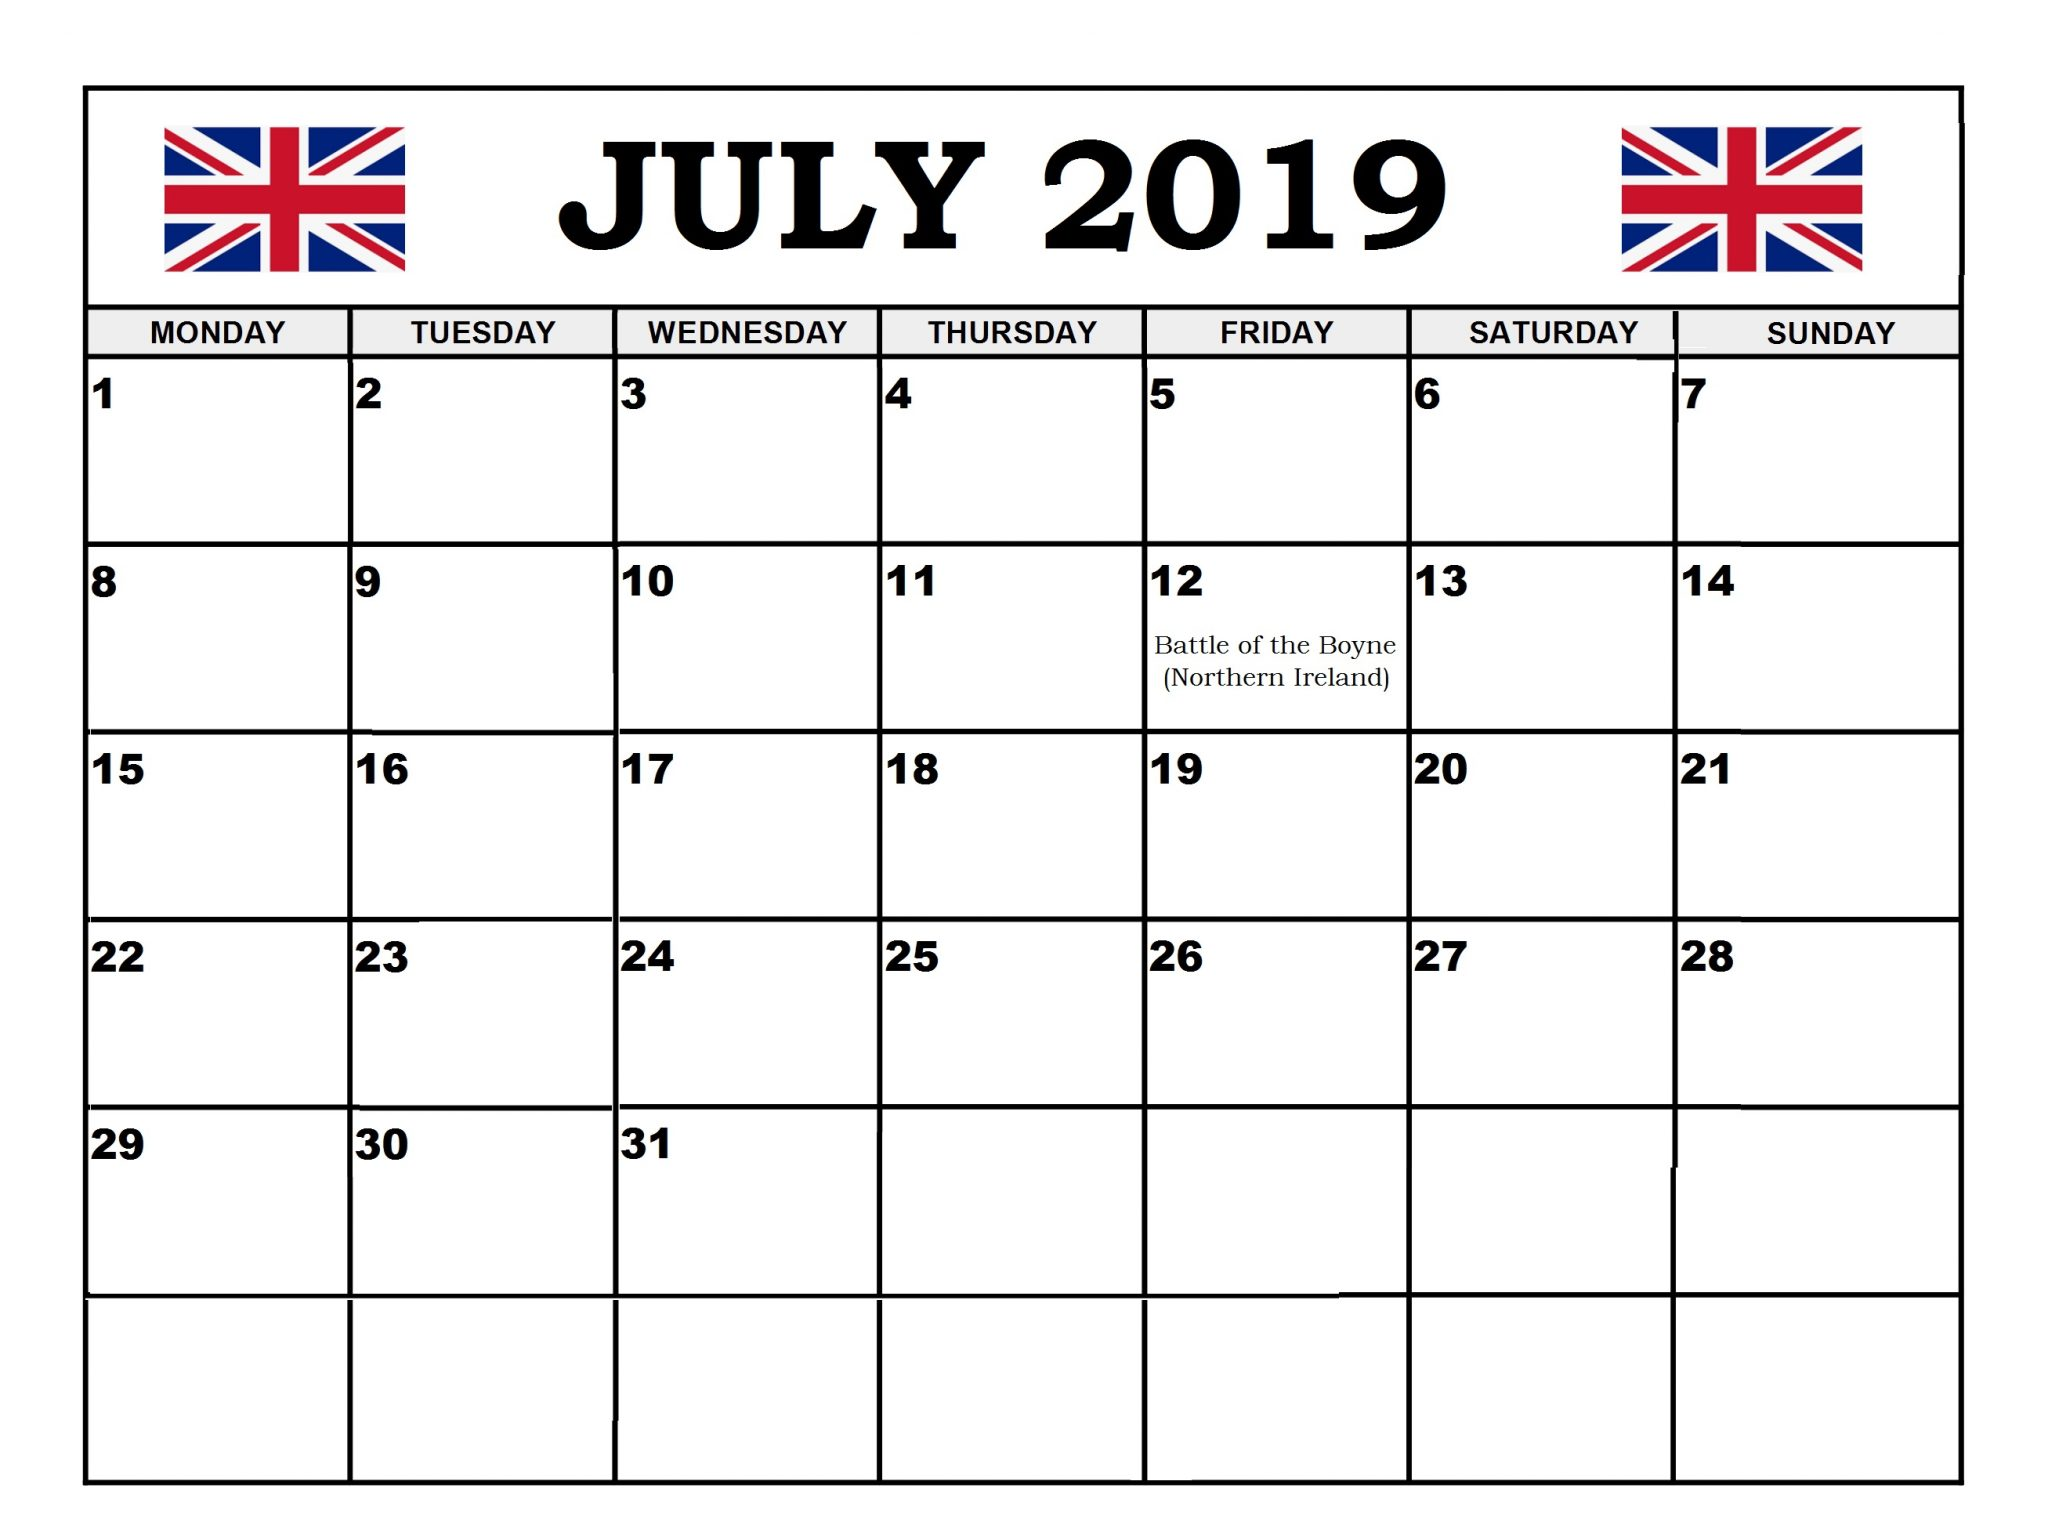 July 2019 United Kingdom Holidays